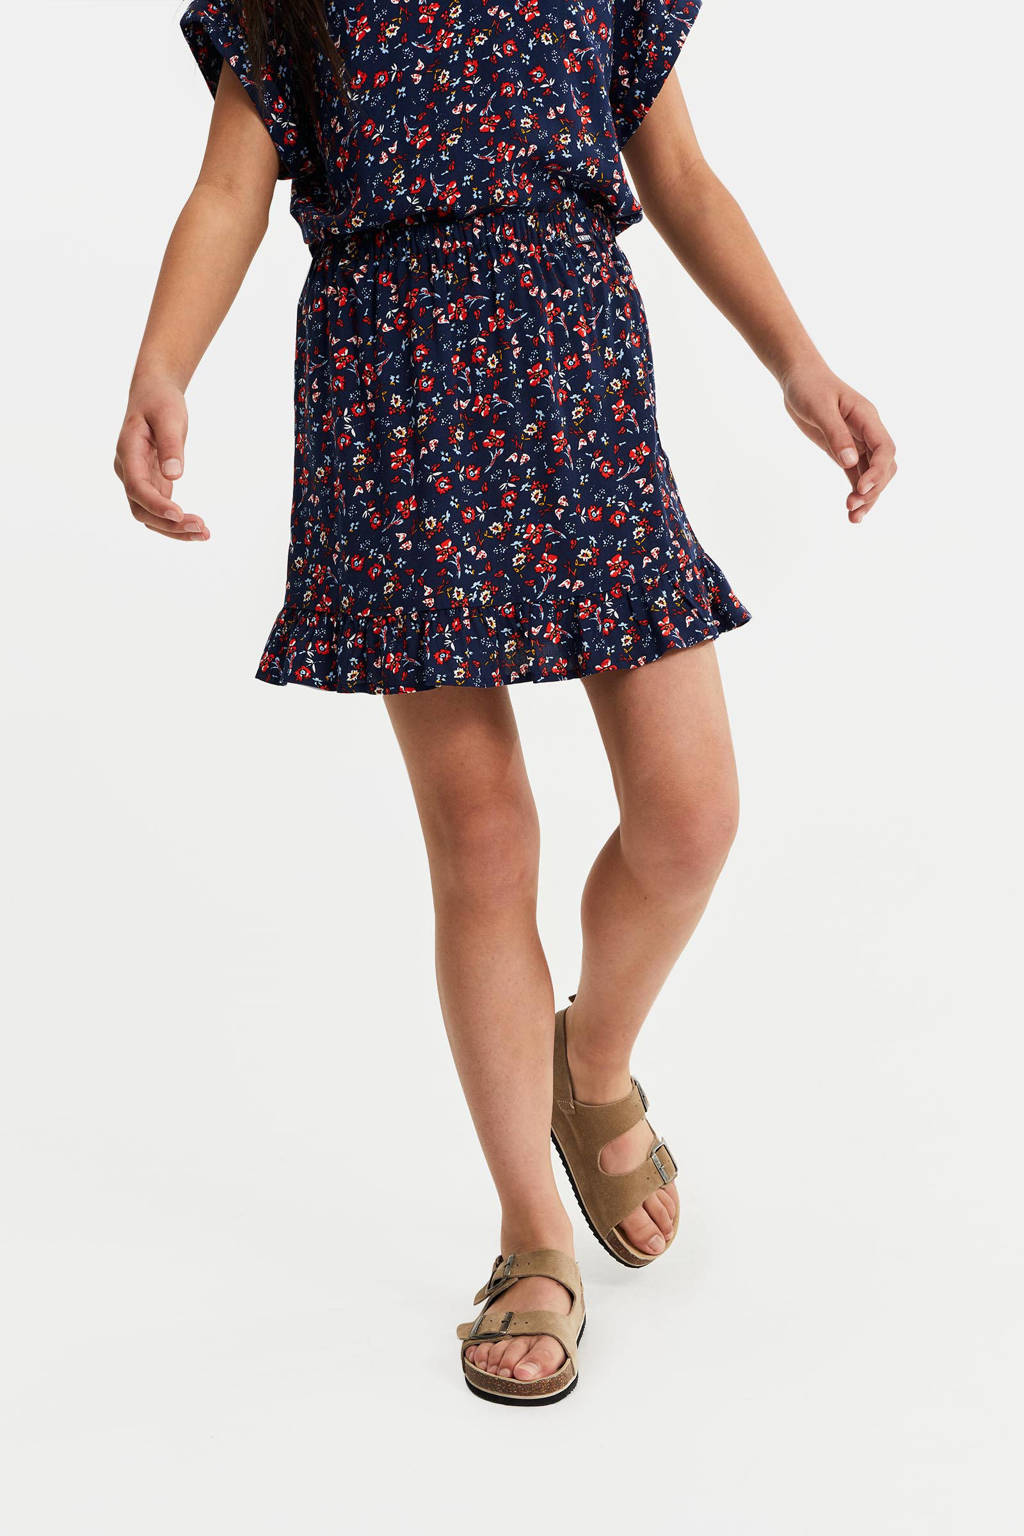 WE Fashion rok met all over print donkerblauw/rood, Donkerblauw/rood